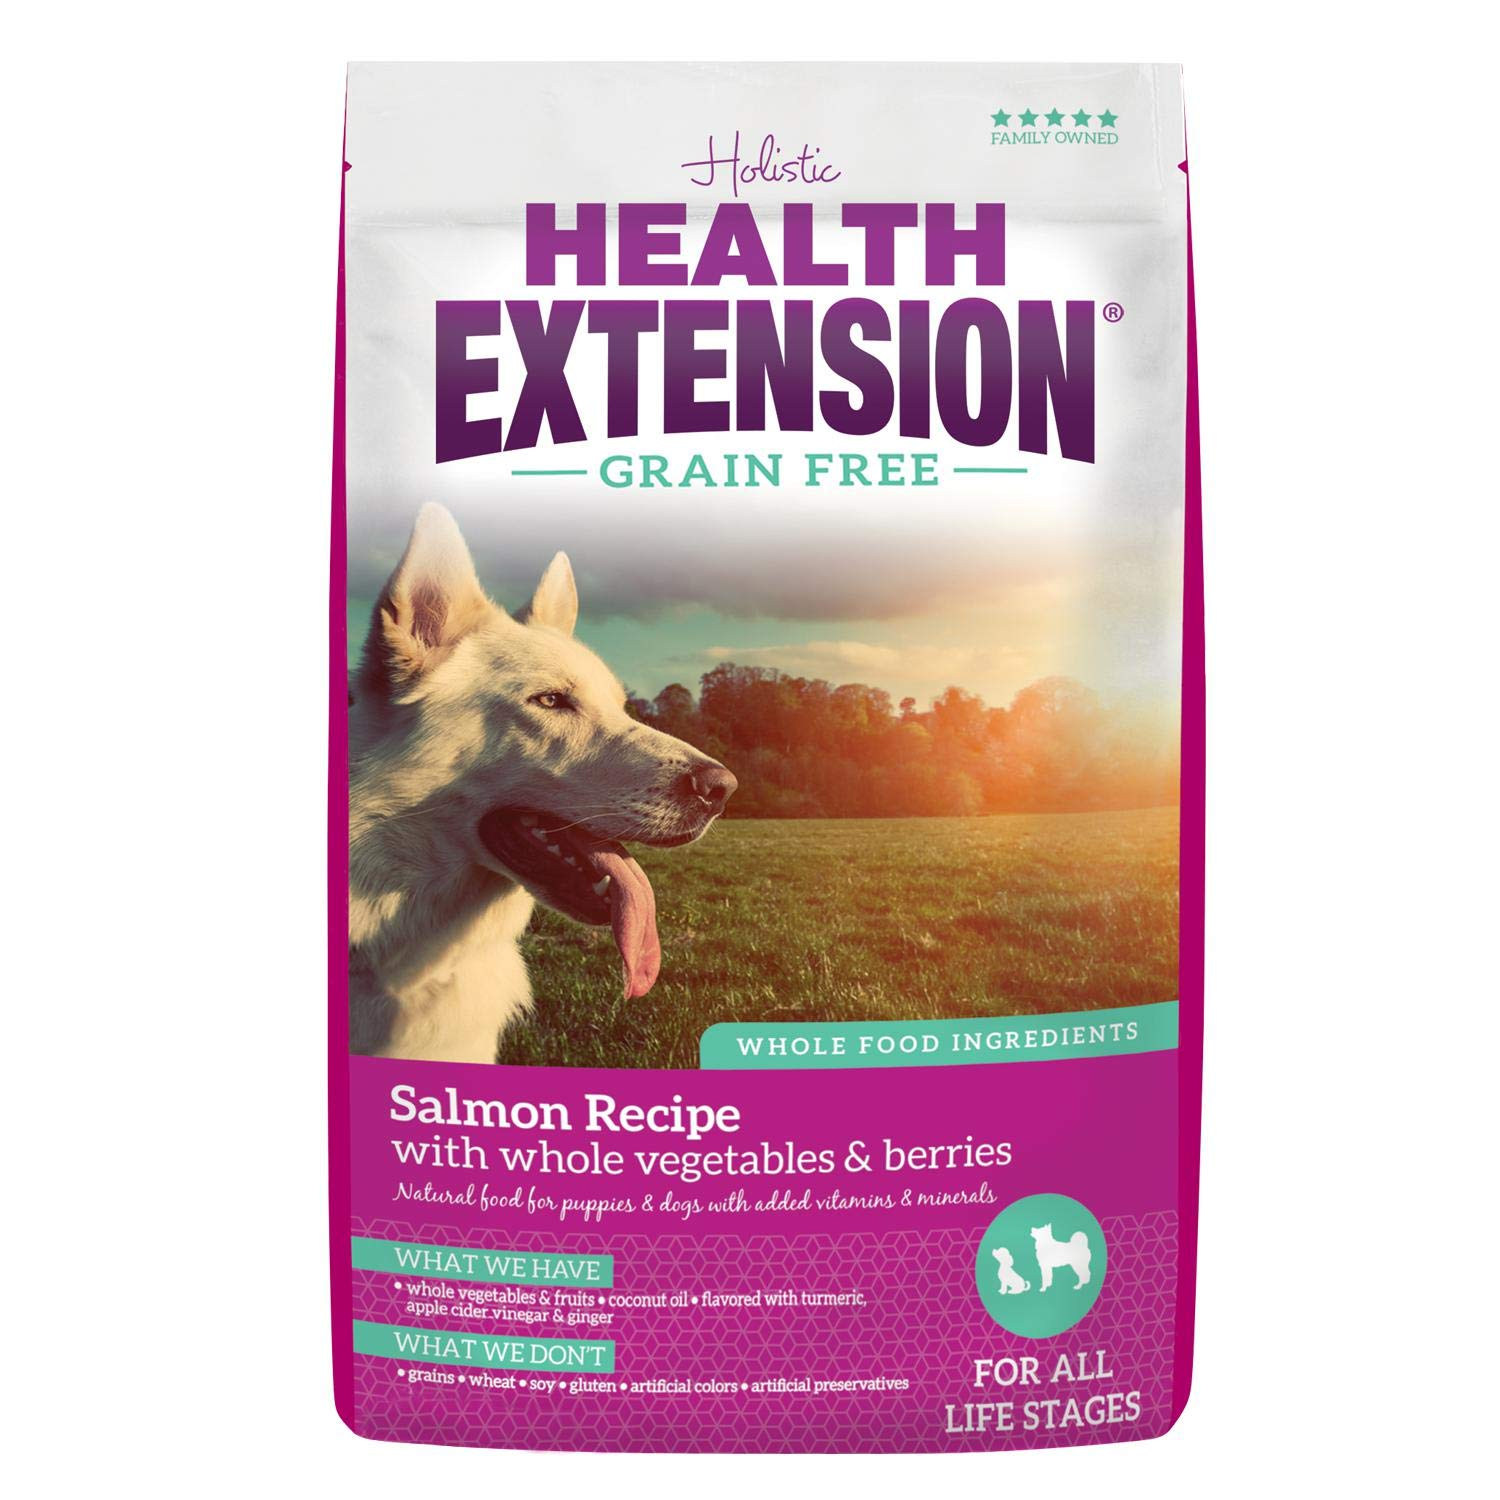 Health Extension Grain Free Dry Dog Food - Salmon Recipe, 23.5lb by Health Extension